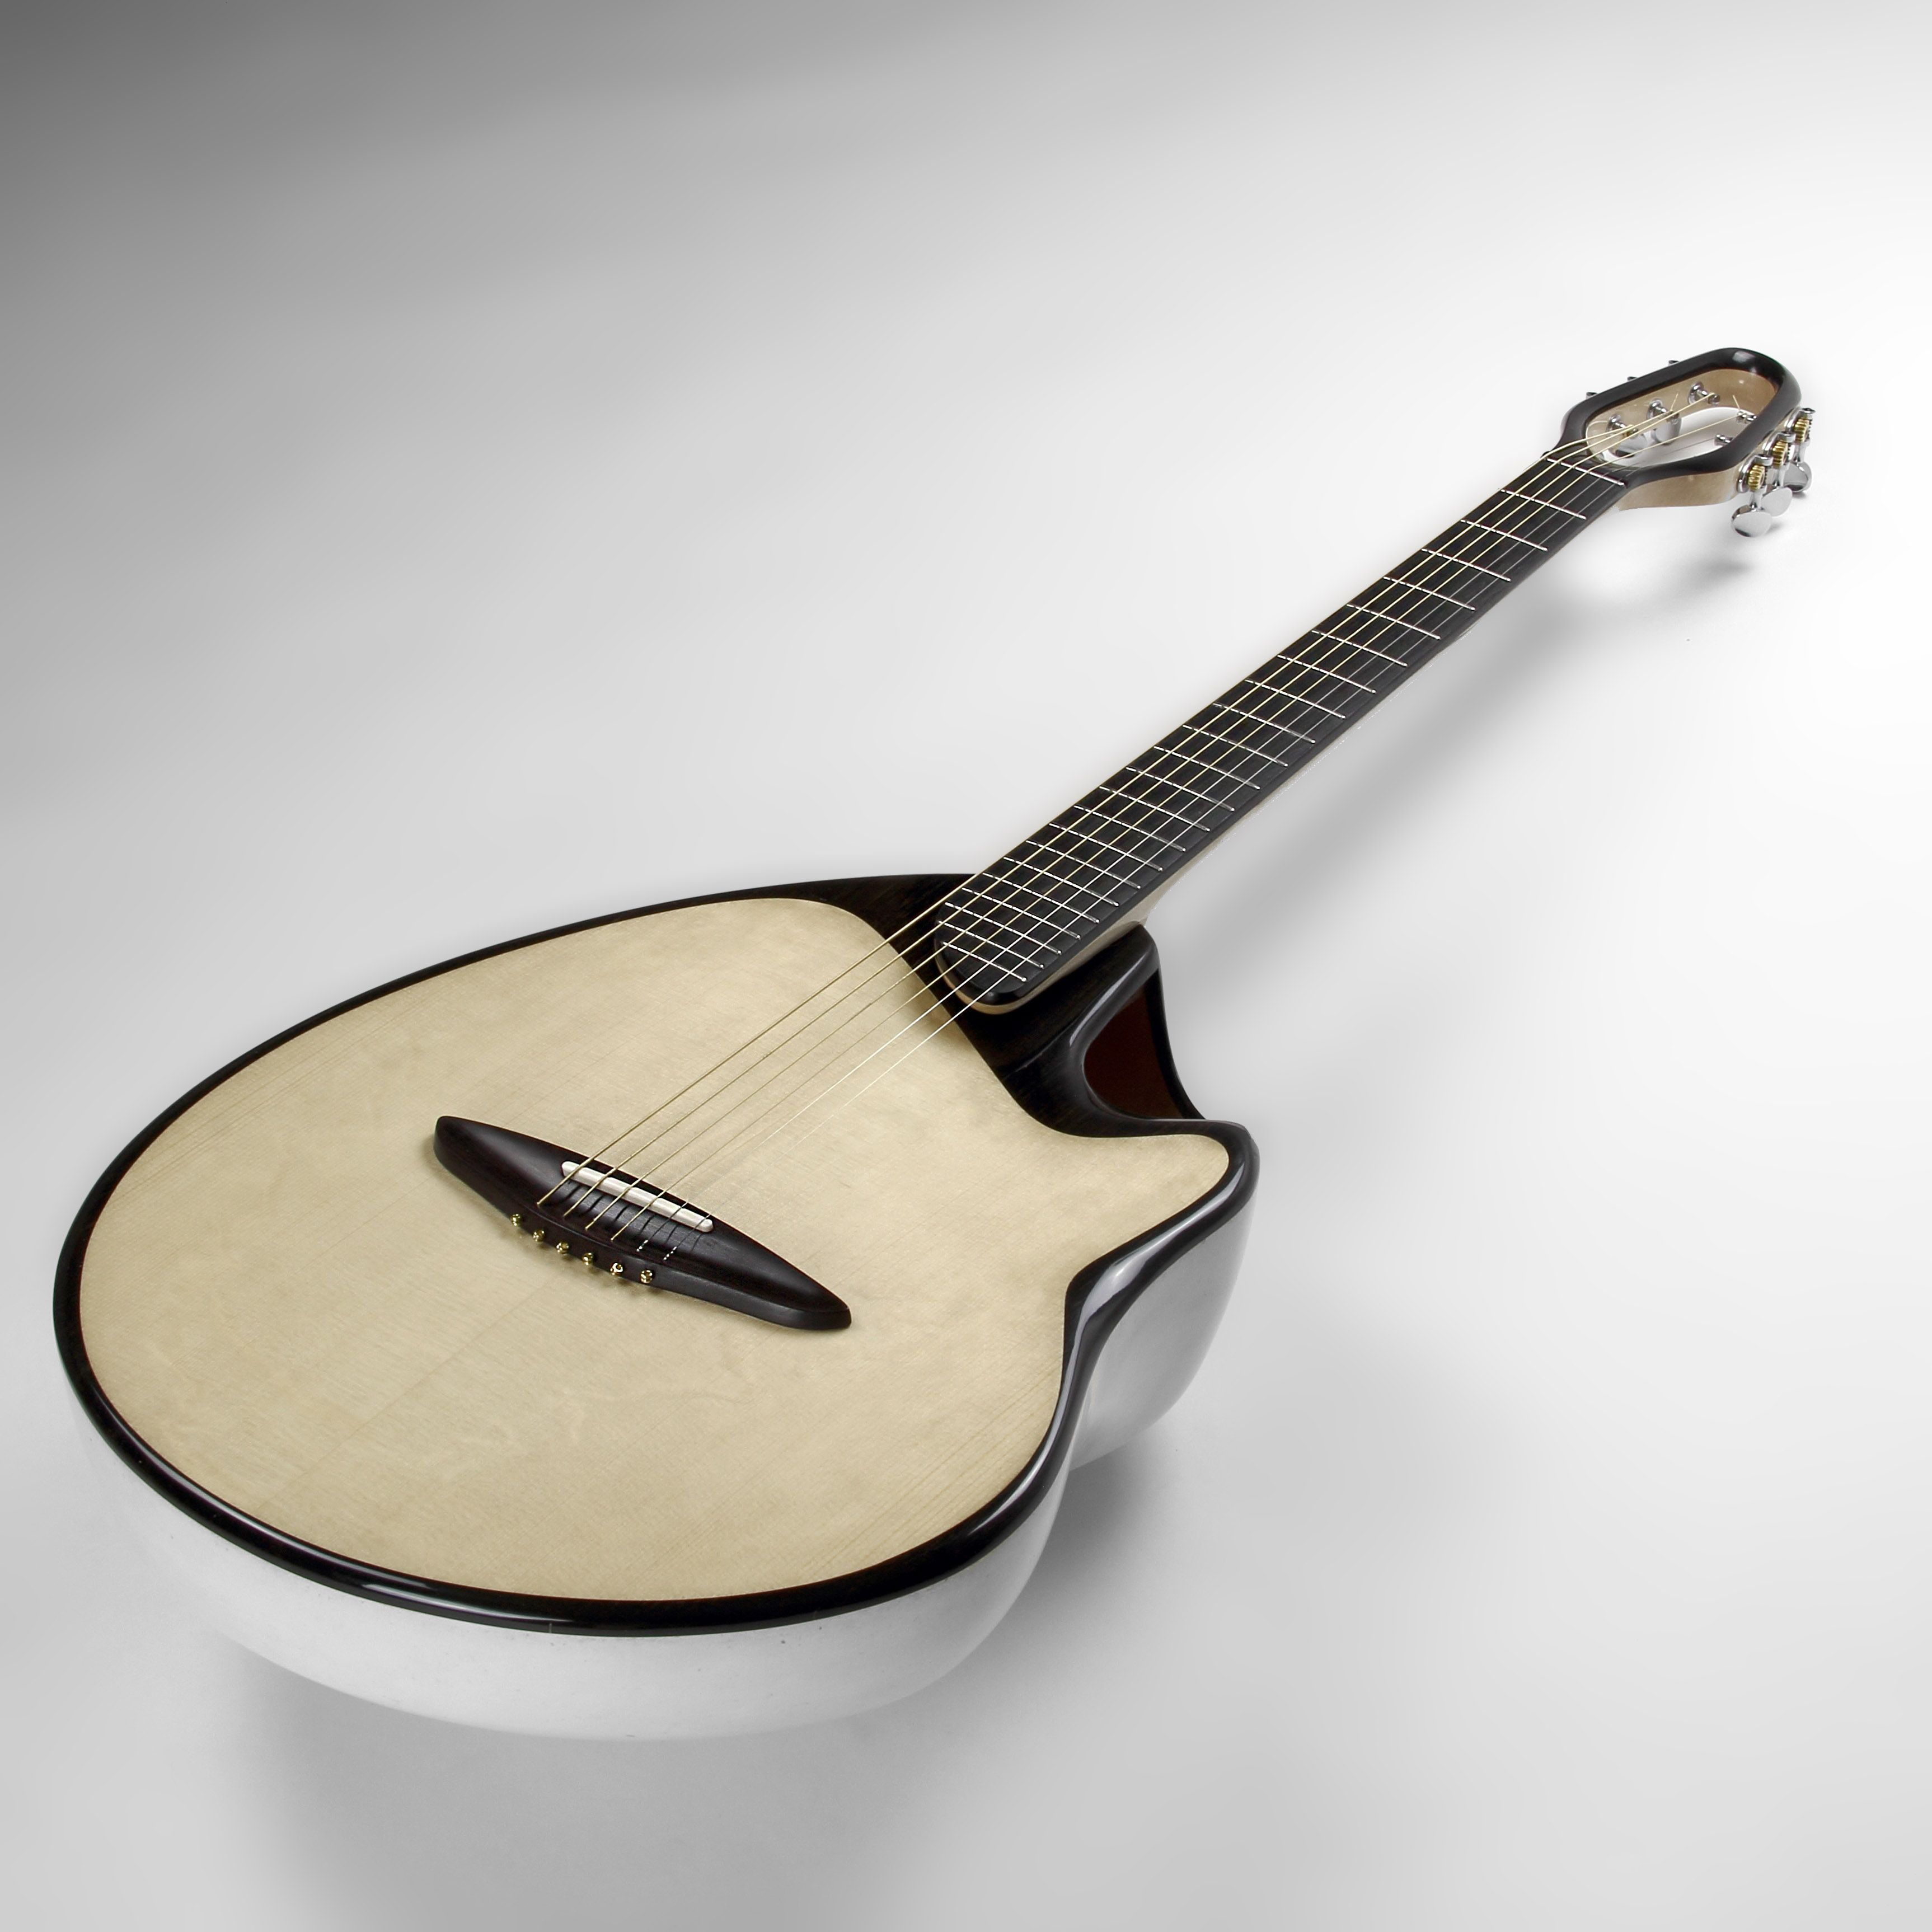 The Canna Guitar Are Handcrafted Acoustic Guitars With A Body Made Of Hemp The Guitars Are 100 Natural With A Truely Un Guitar Acoustic Guitar Guitar Design